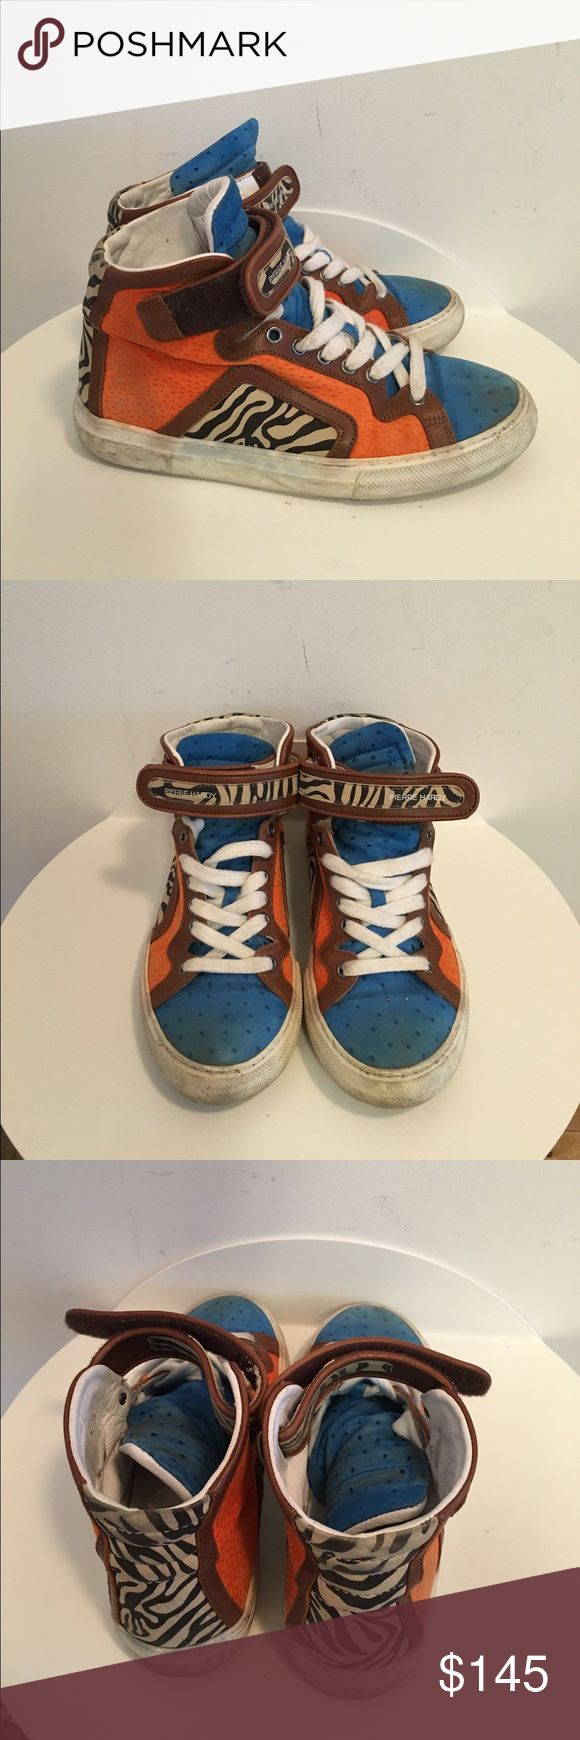 Pierre Hardy sneakers Cool Pierre Hardy sneakers! Great condition. Size 36/6 Pierre Hardy Shoes Sneakers